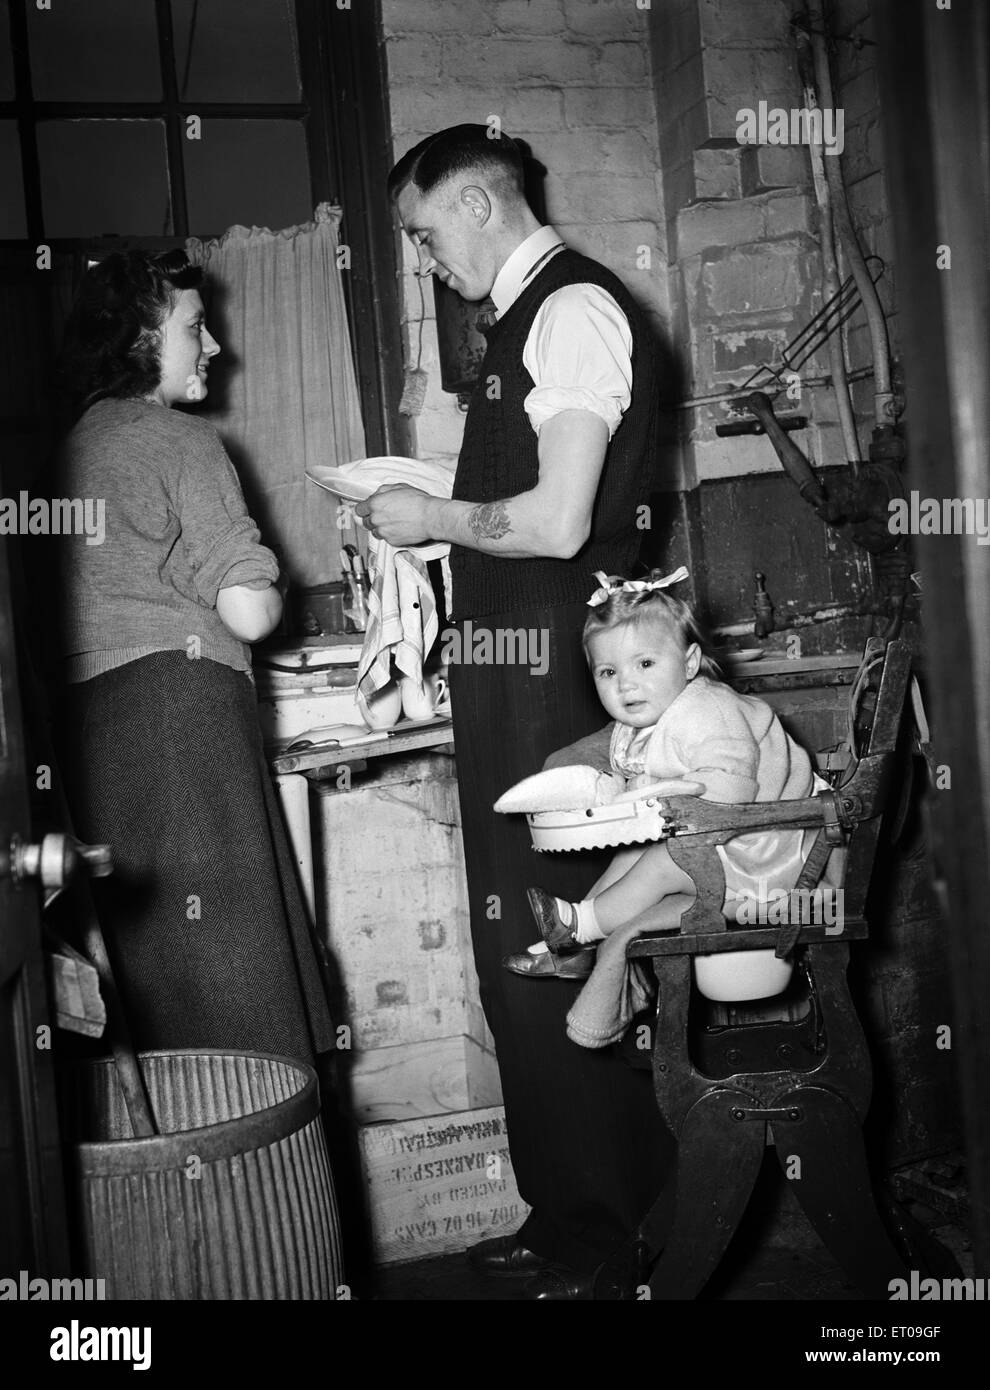 Leicester football team, FA Cup Finalists. Ted Jelly at home with wife and baby girl. 31st March 1949. - Stock Image